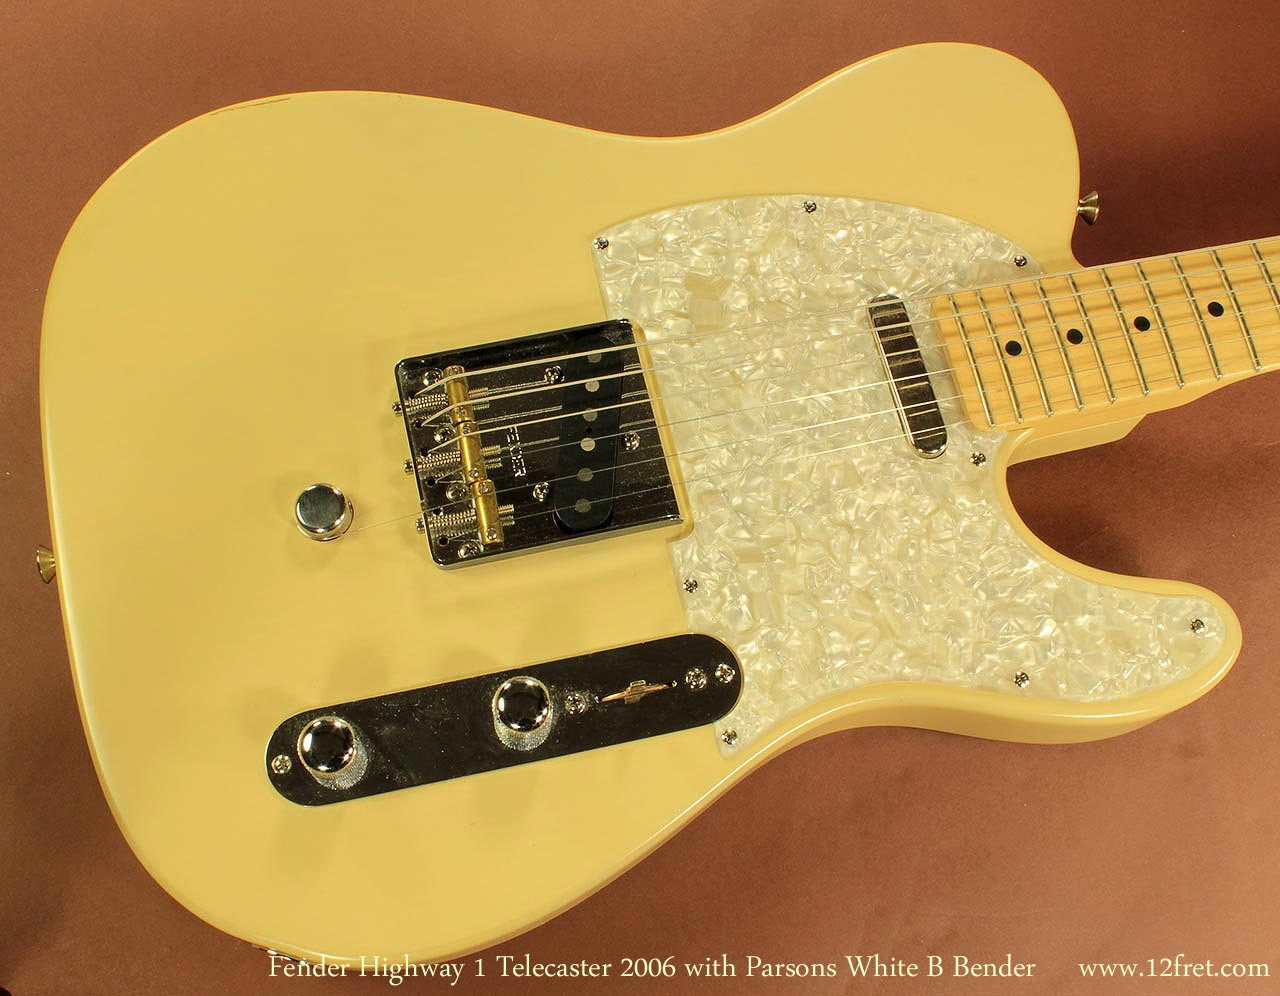 fender telecaster with parsons white b bender and keith tuners 2006. Black Bedroom Furniture Sets. Home Design Ideas